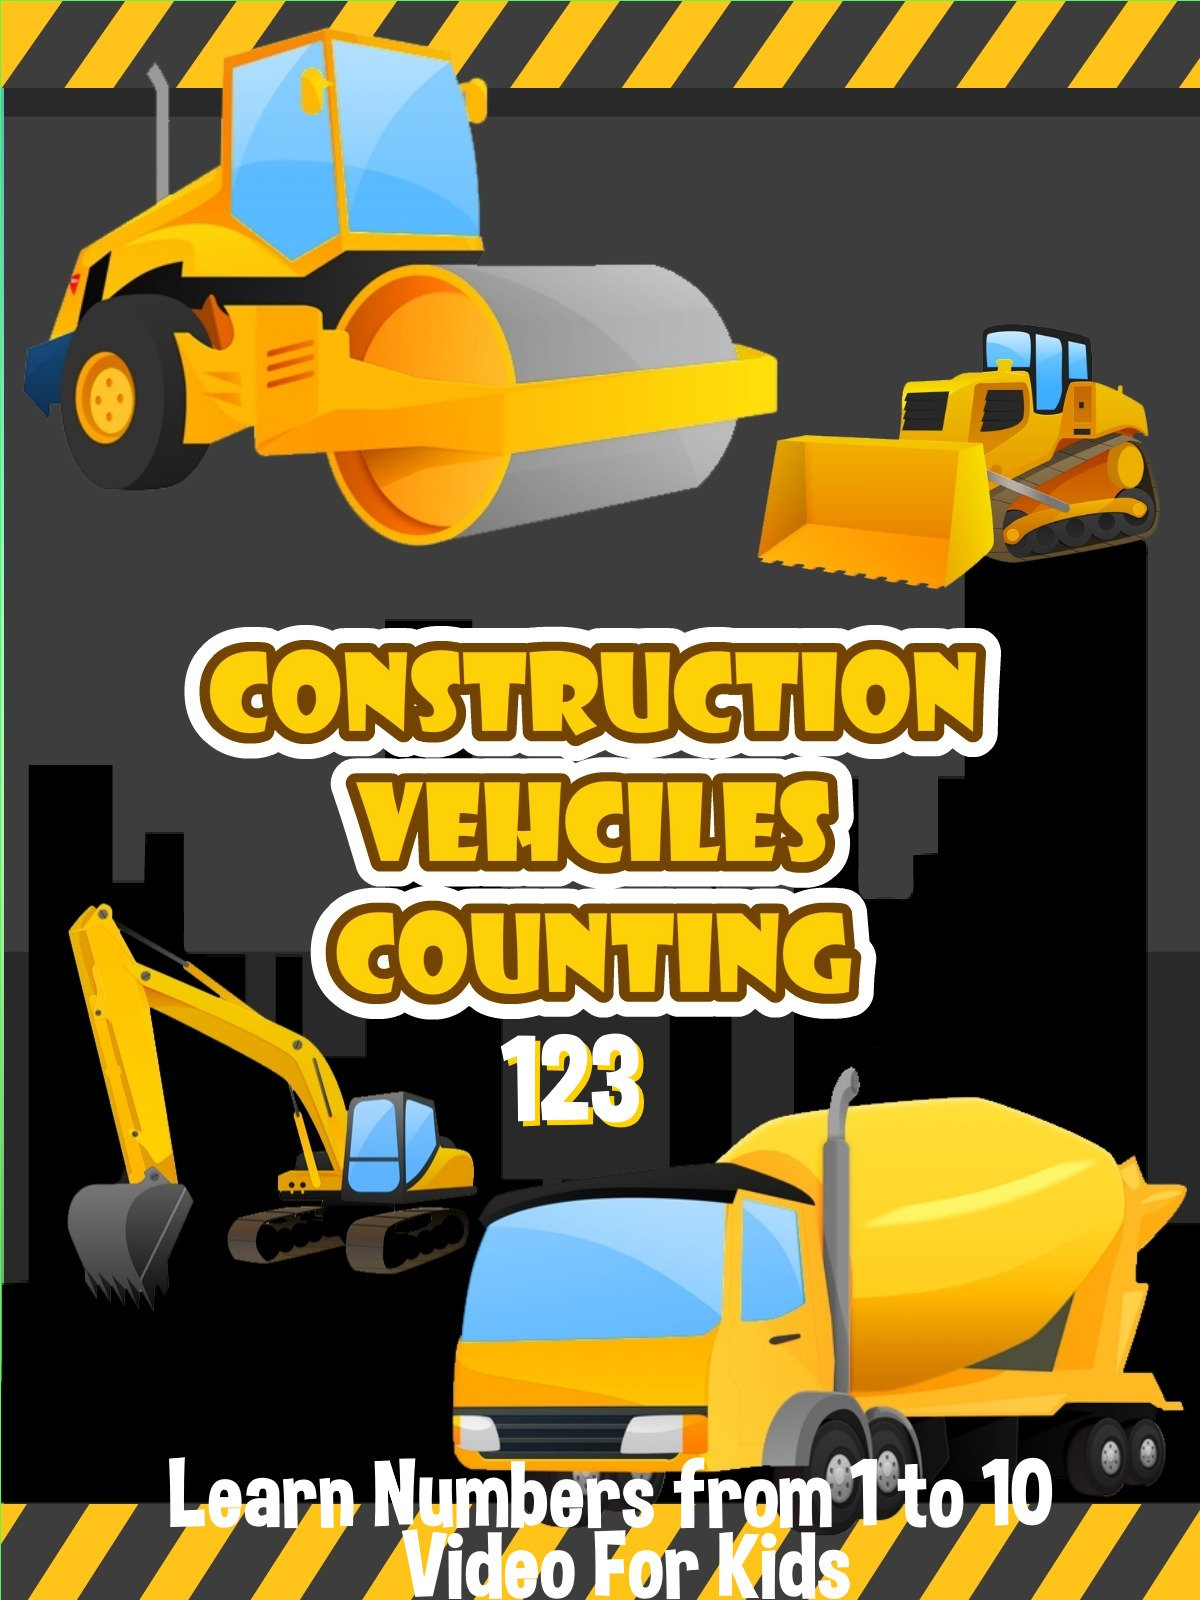 Construction Vehicles Counting 123